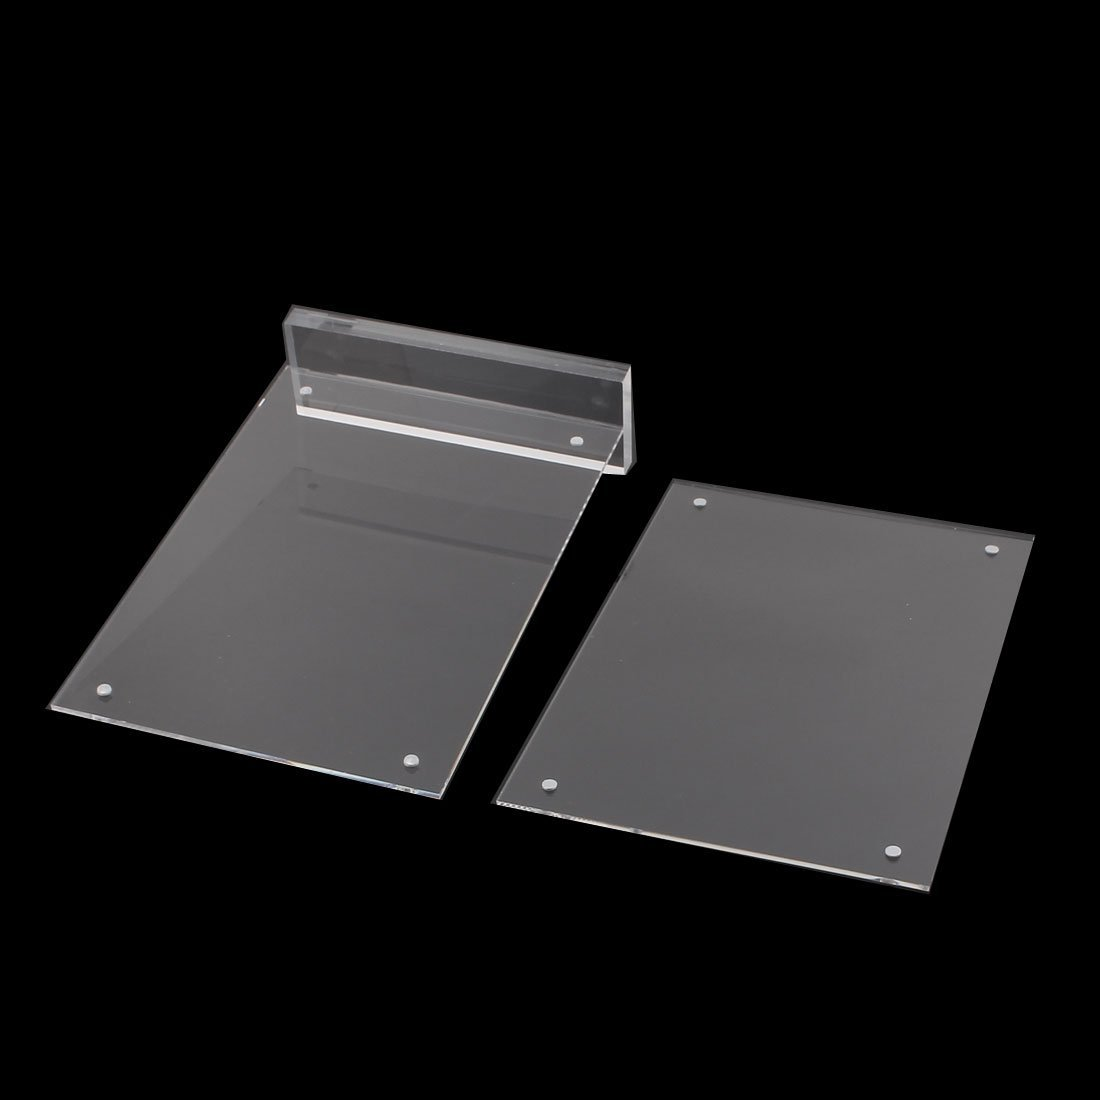 DealMux Strong Magnetism Vertical Advertising Tag Card Display Stand Menu Price Holder 21x14.8cm